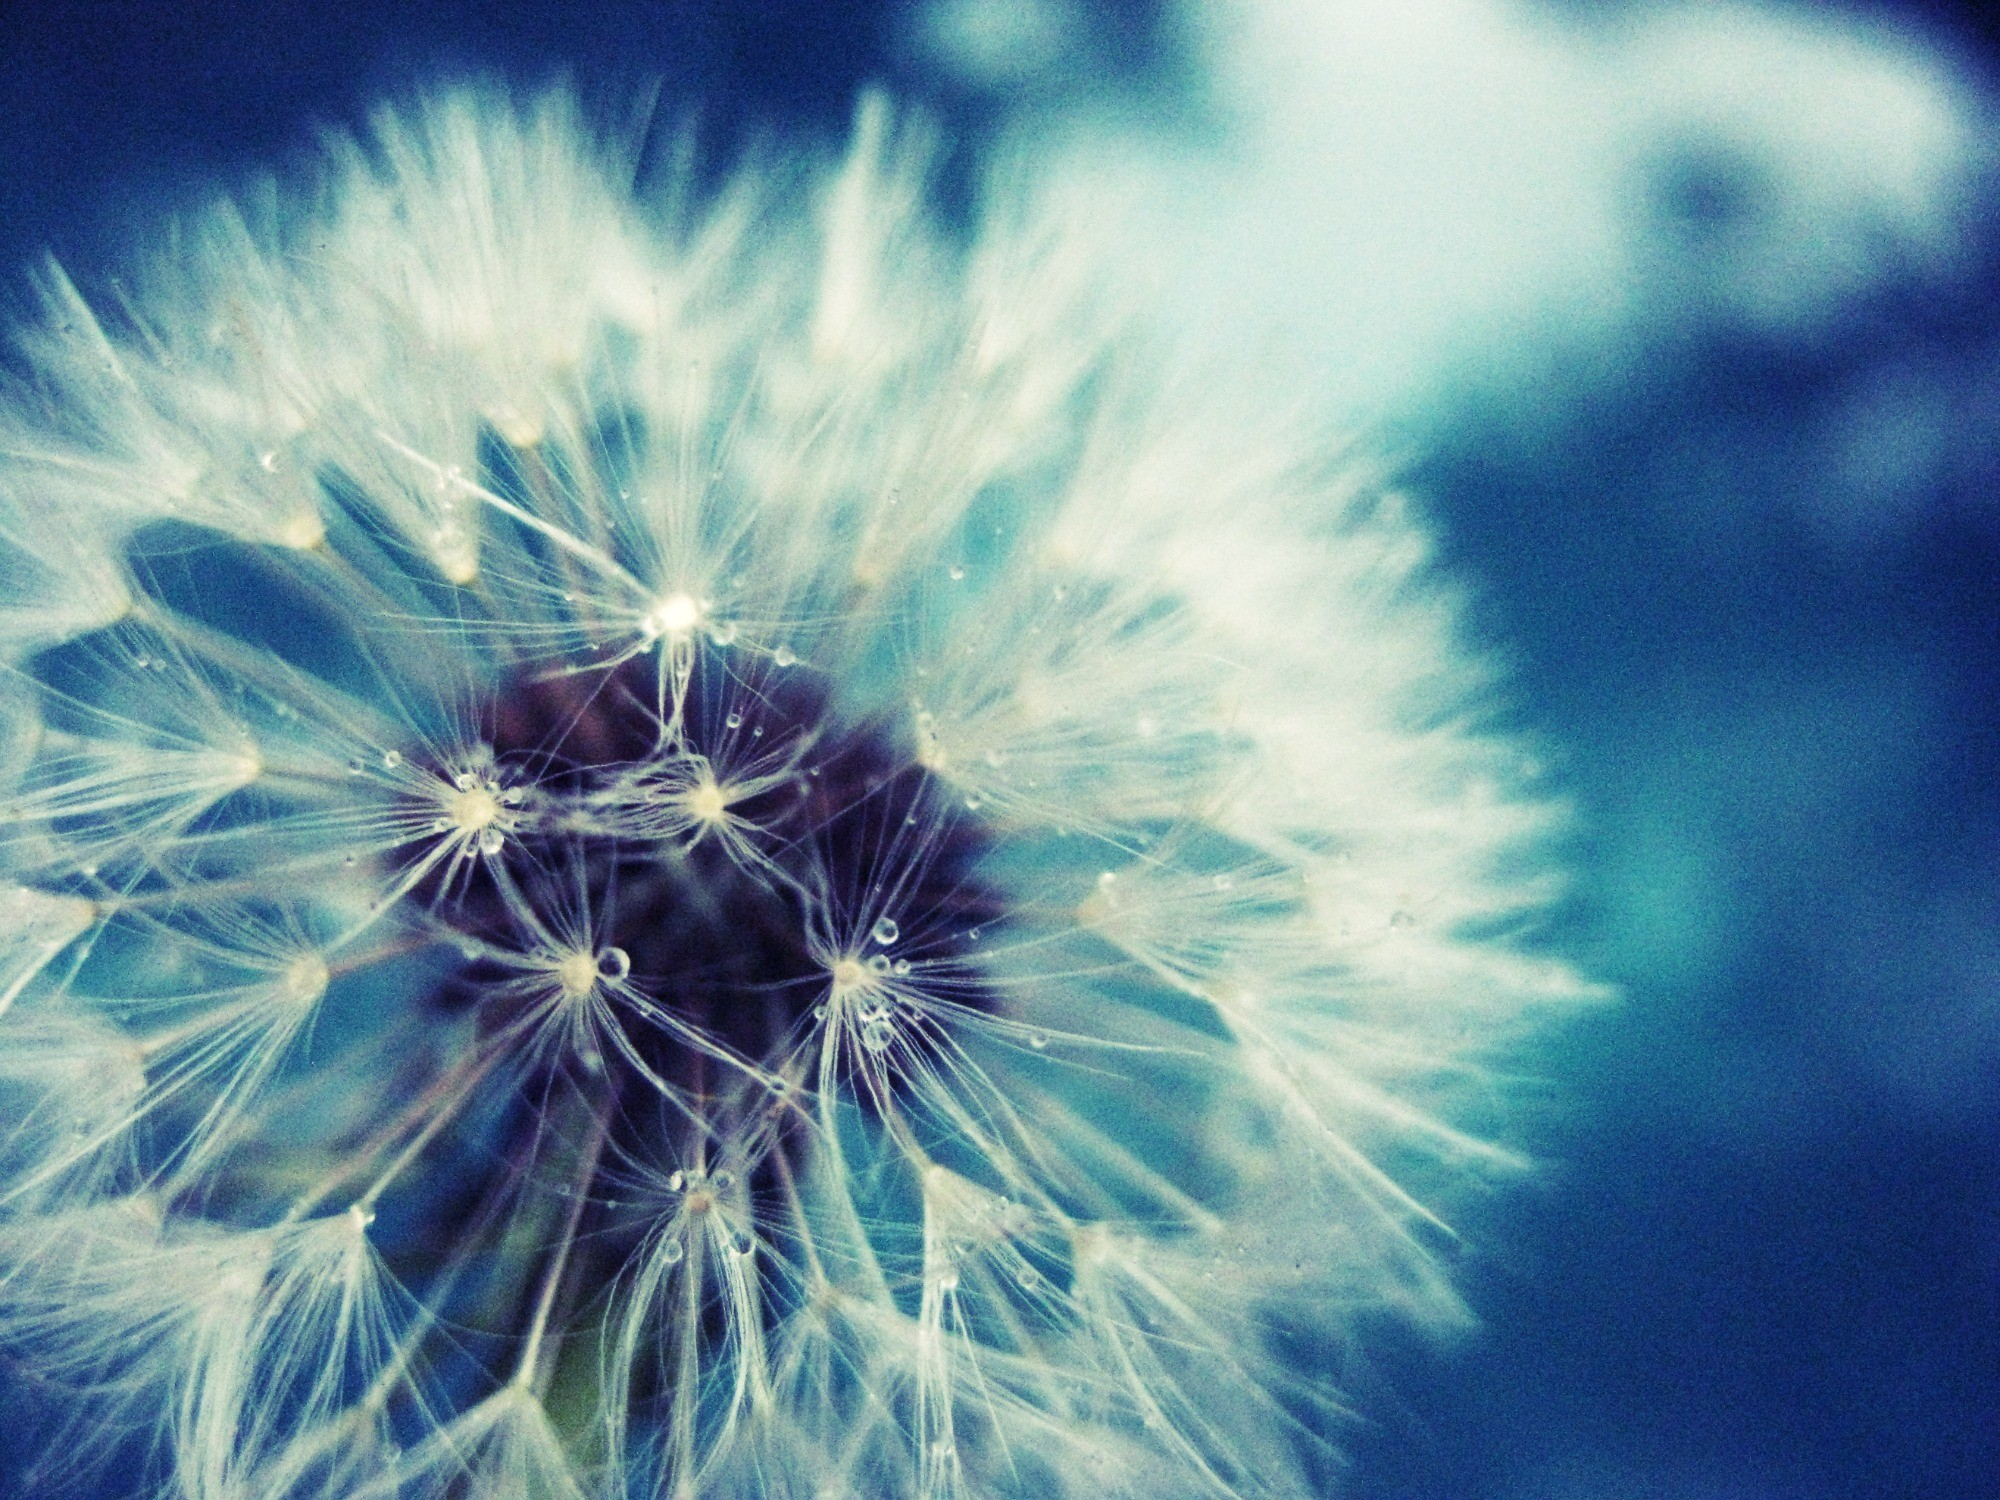 Dandelion Fan Full – HD Wallpaper